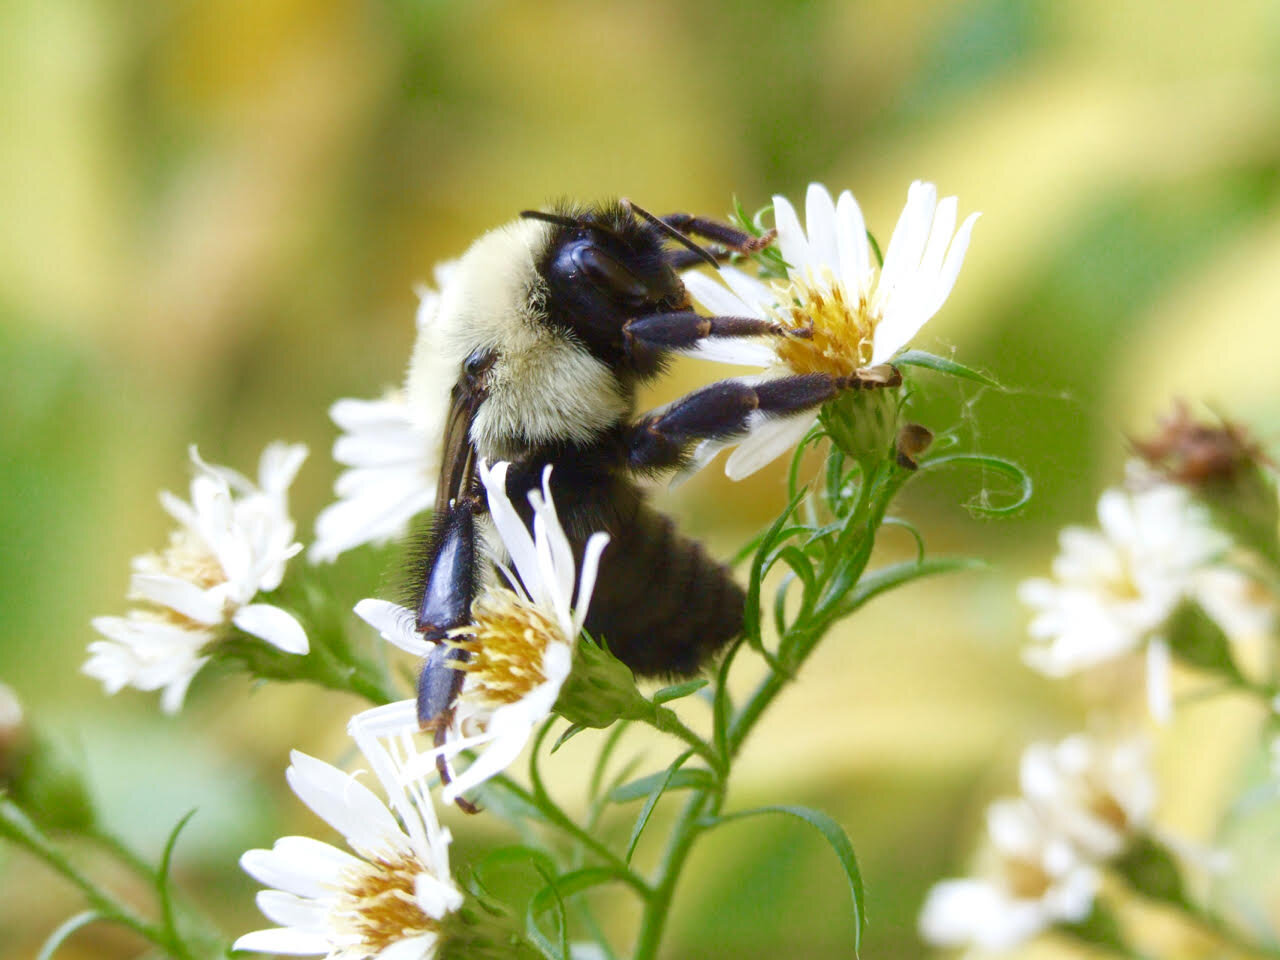 photo of As bumblebee diets narrow, ours could too image